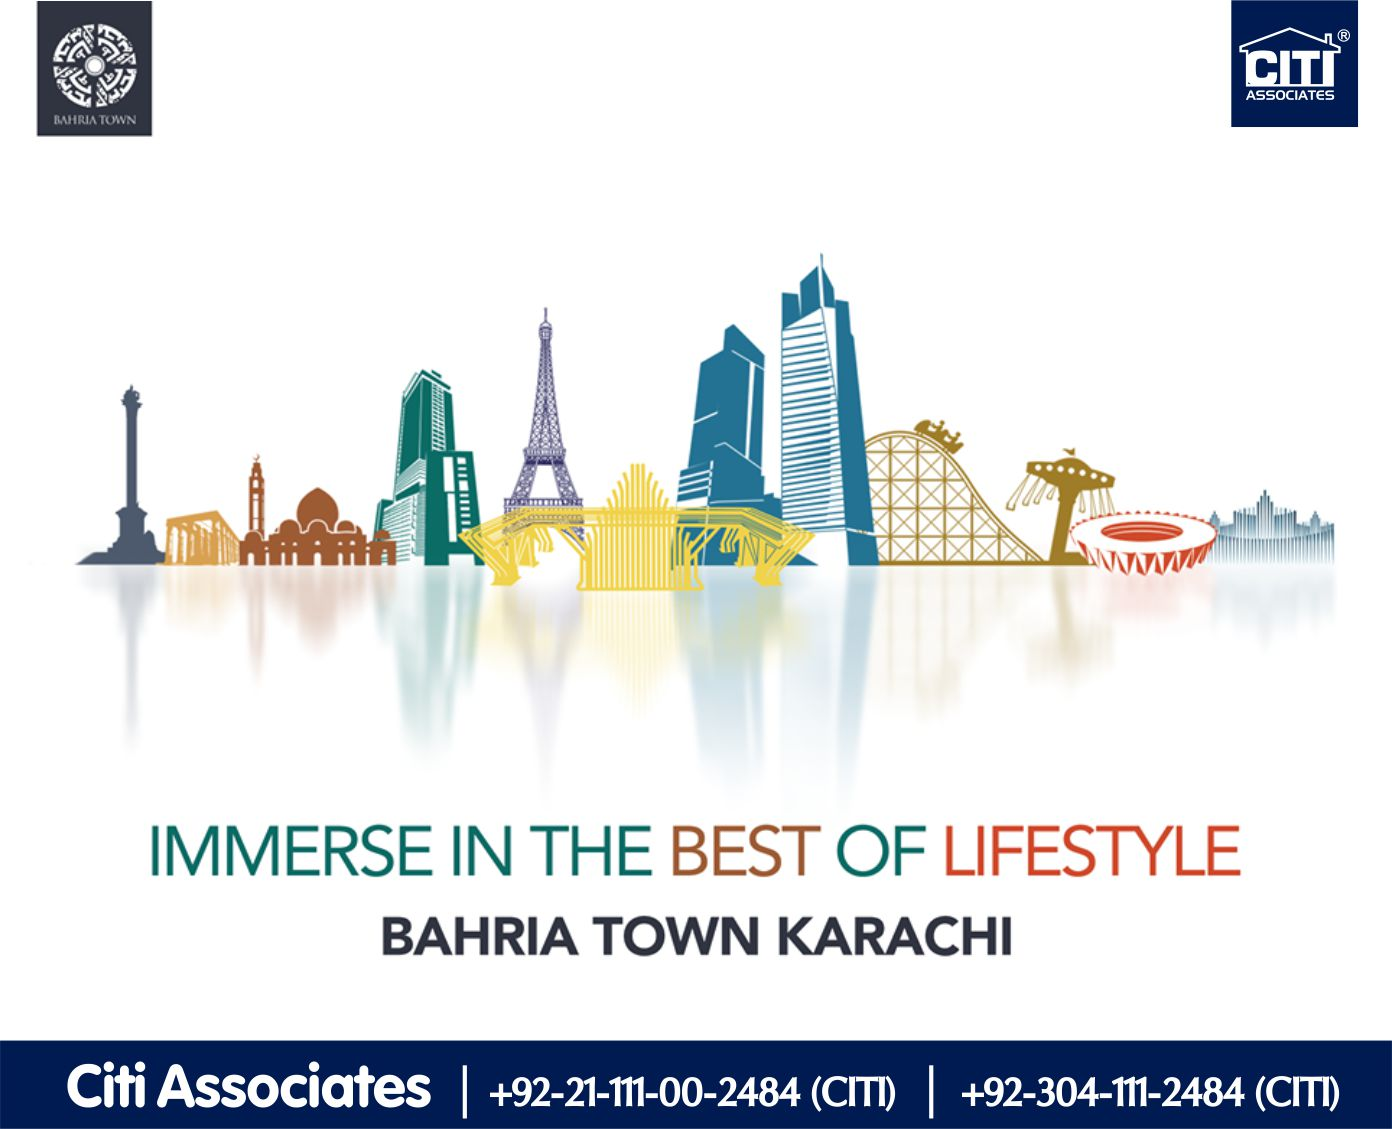 Immerse in the Best of Lifestyle! Bahria Town Karachi